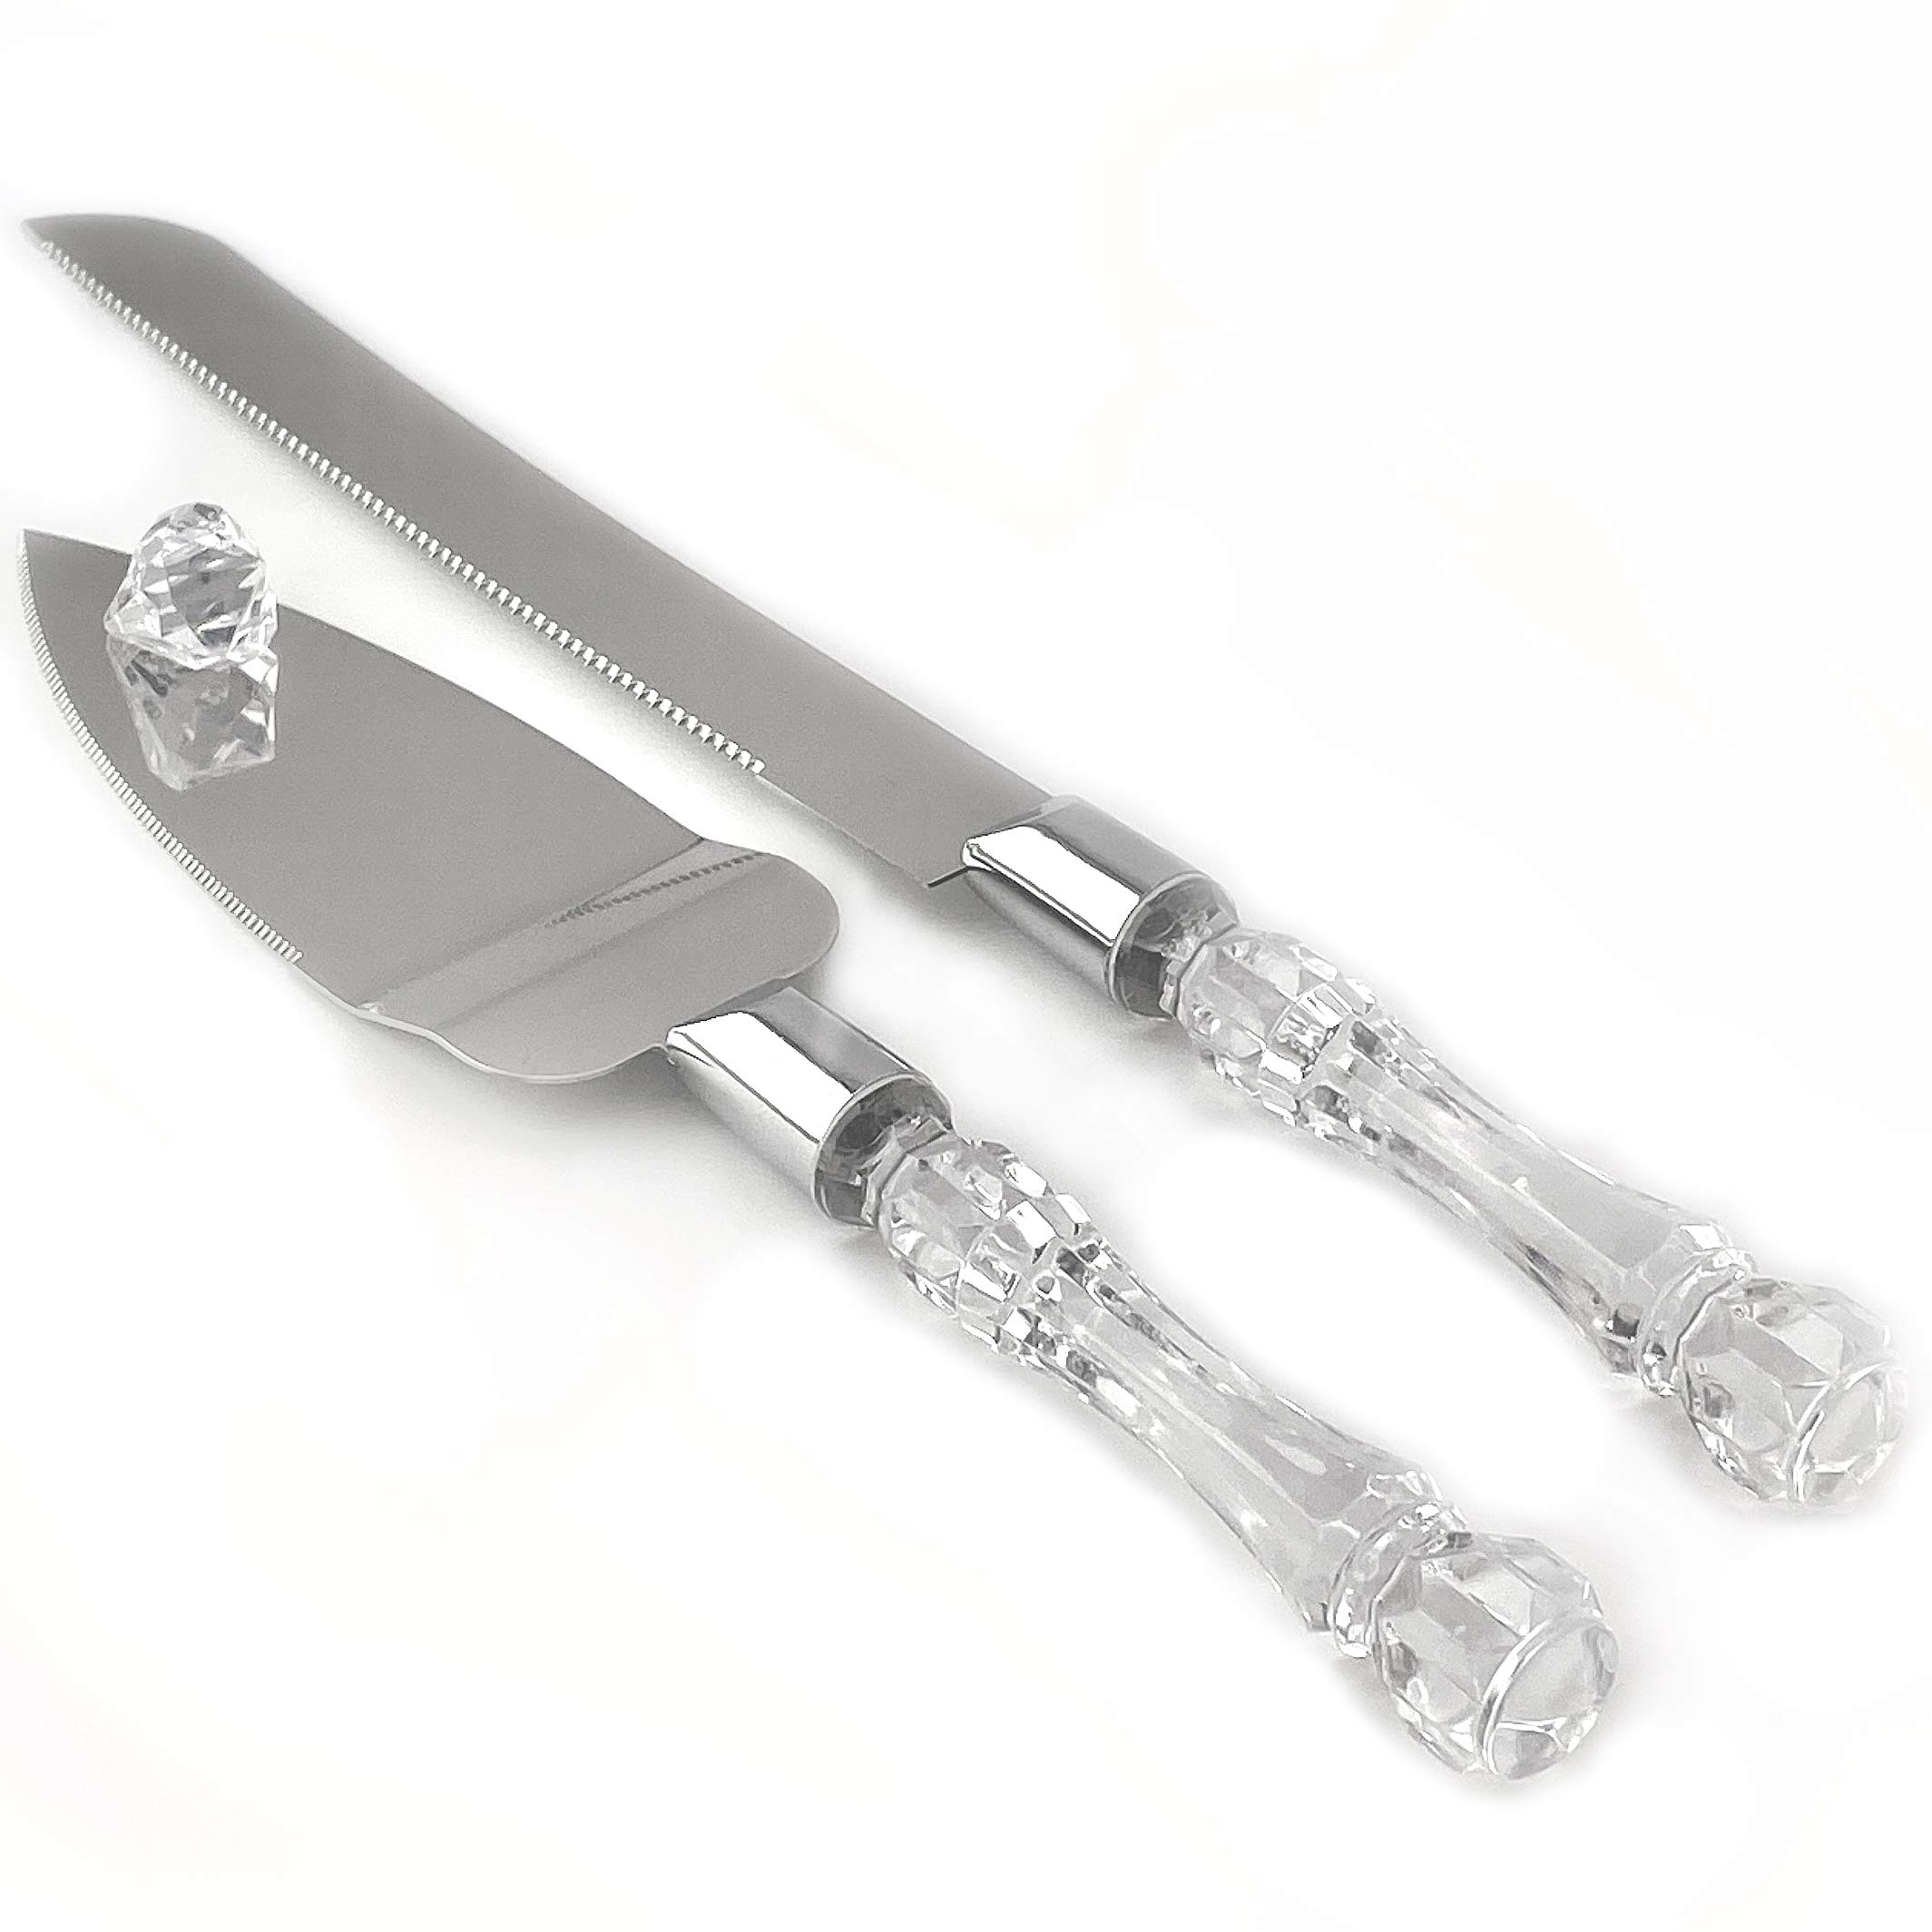 Adorox Cake Knife and Server Set Acrylic Stainless Steel Faux Crystal Handle